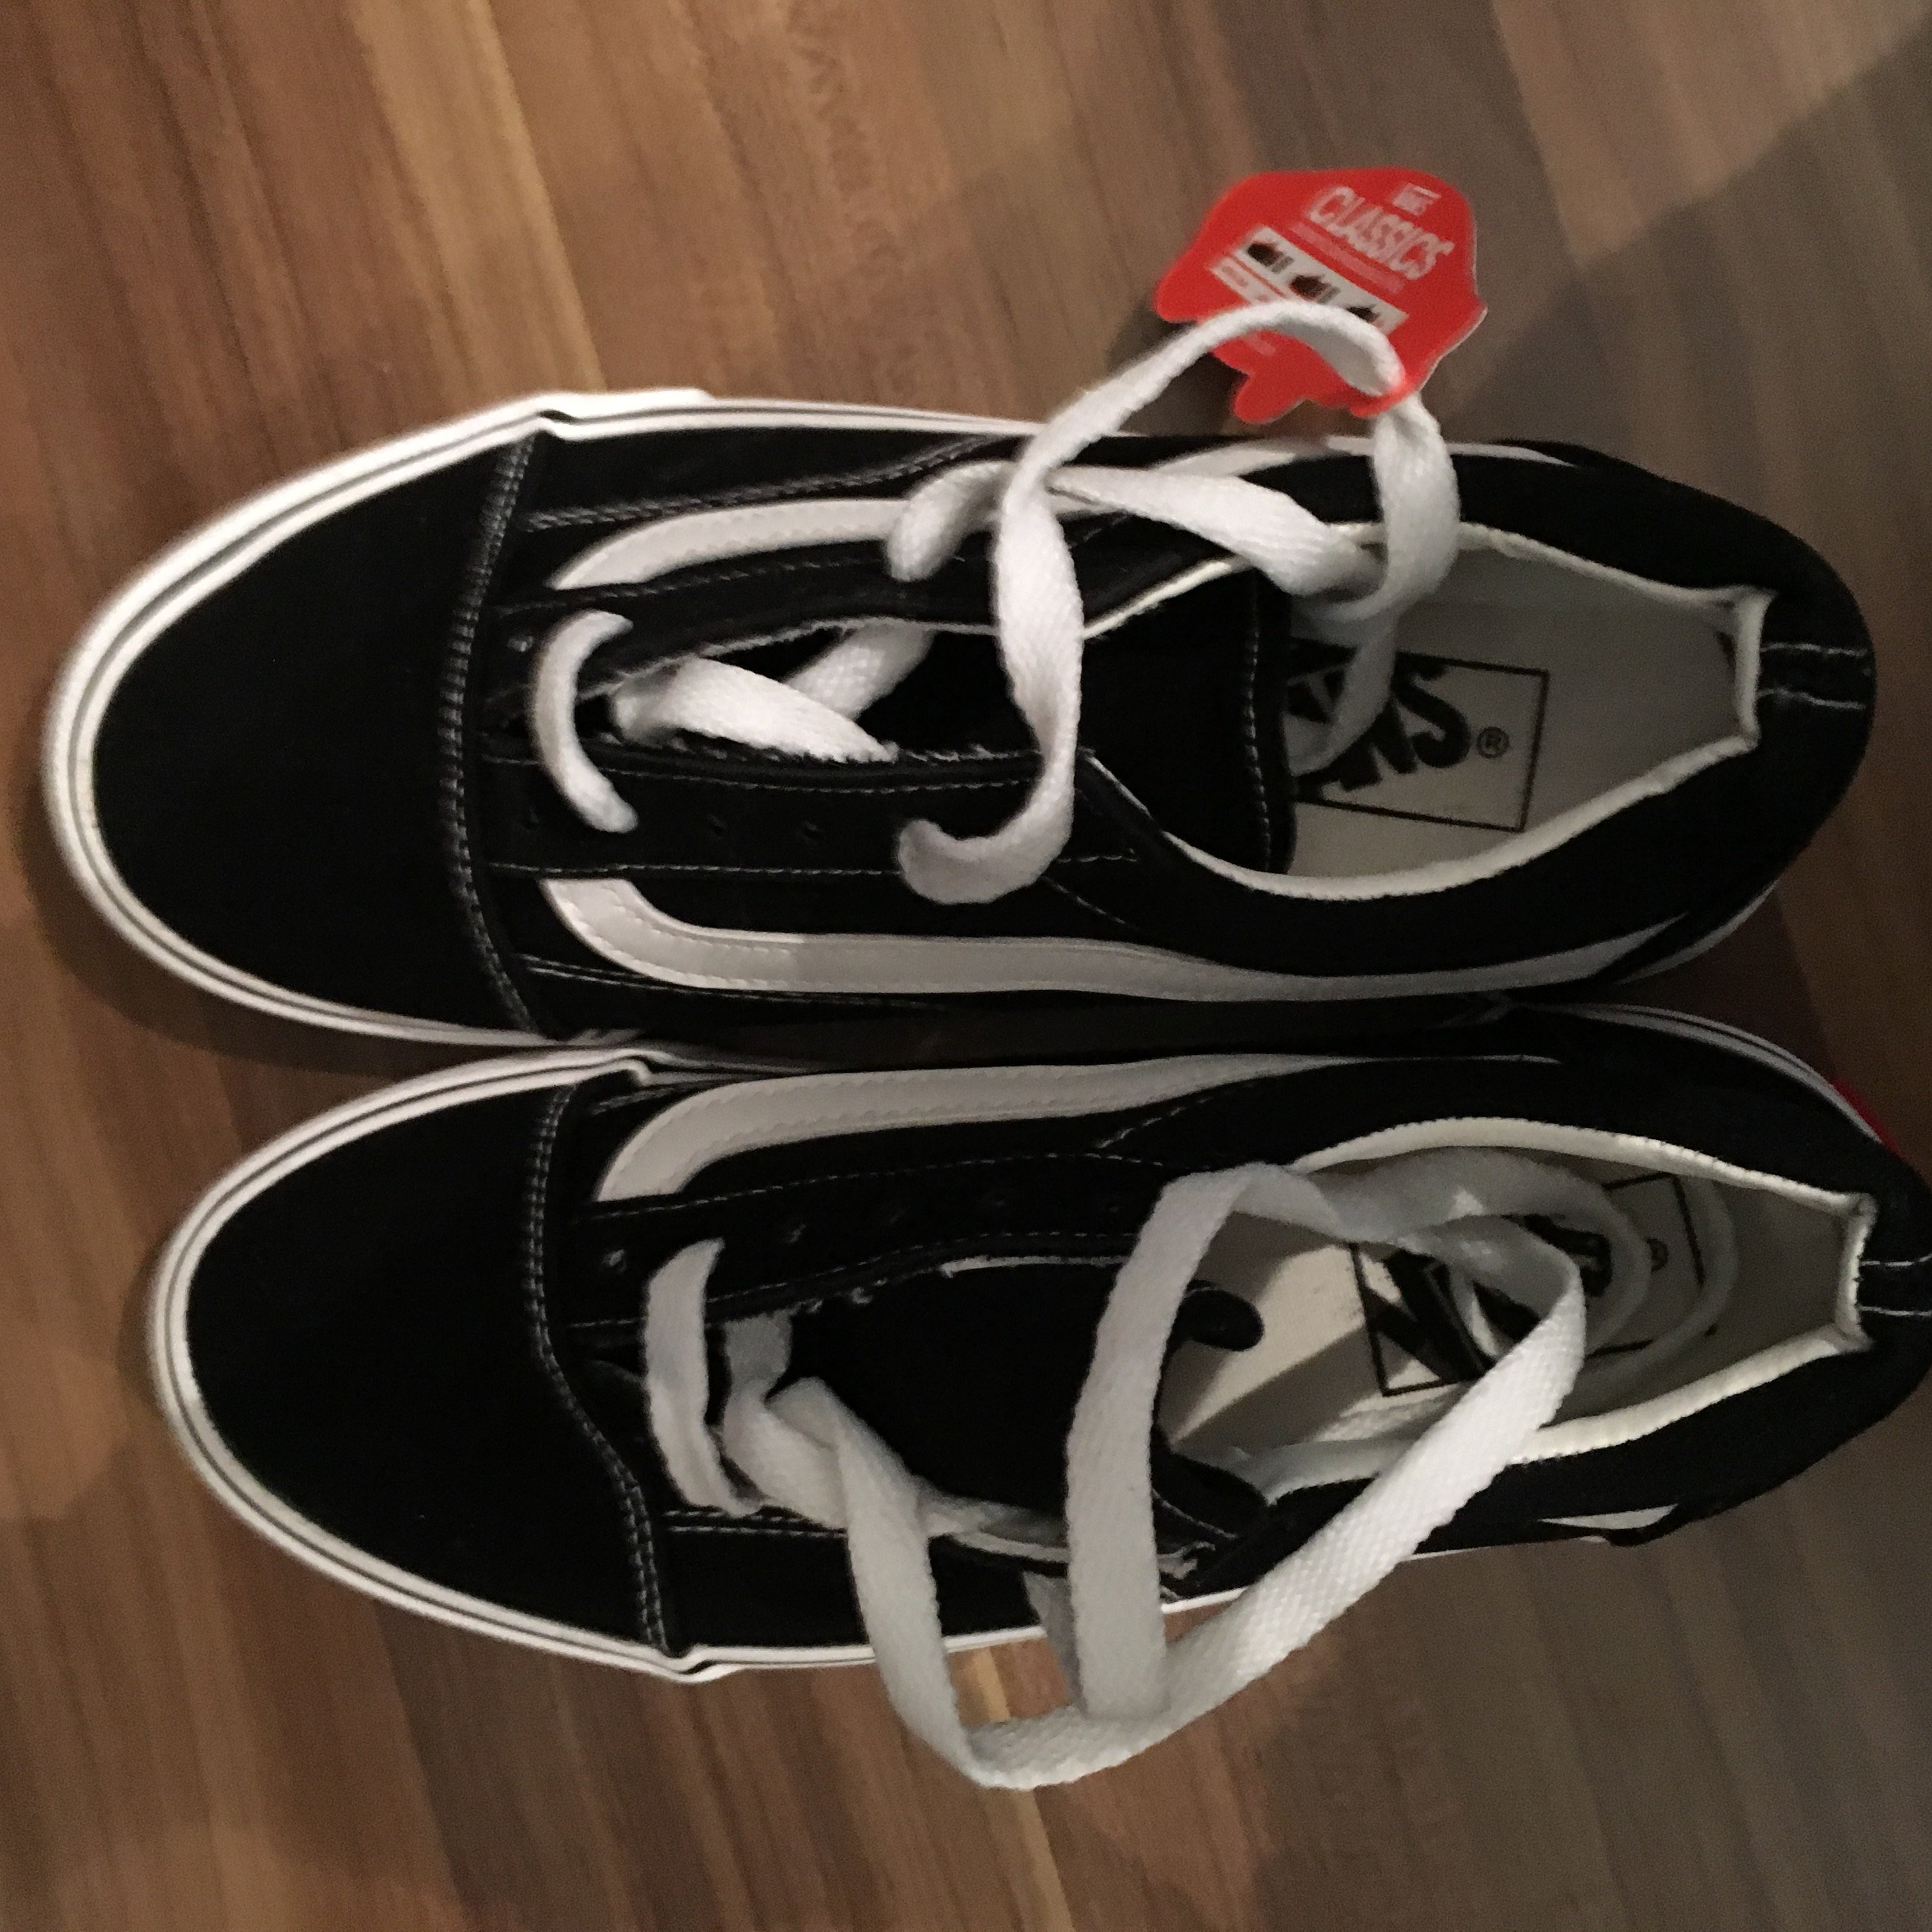 Vans old skool 35-36 nowe